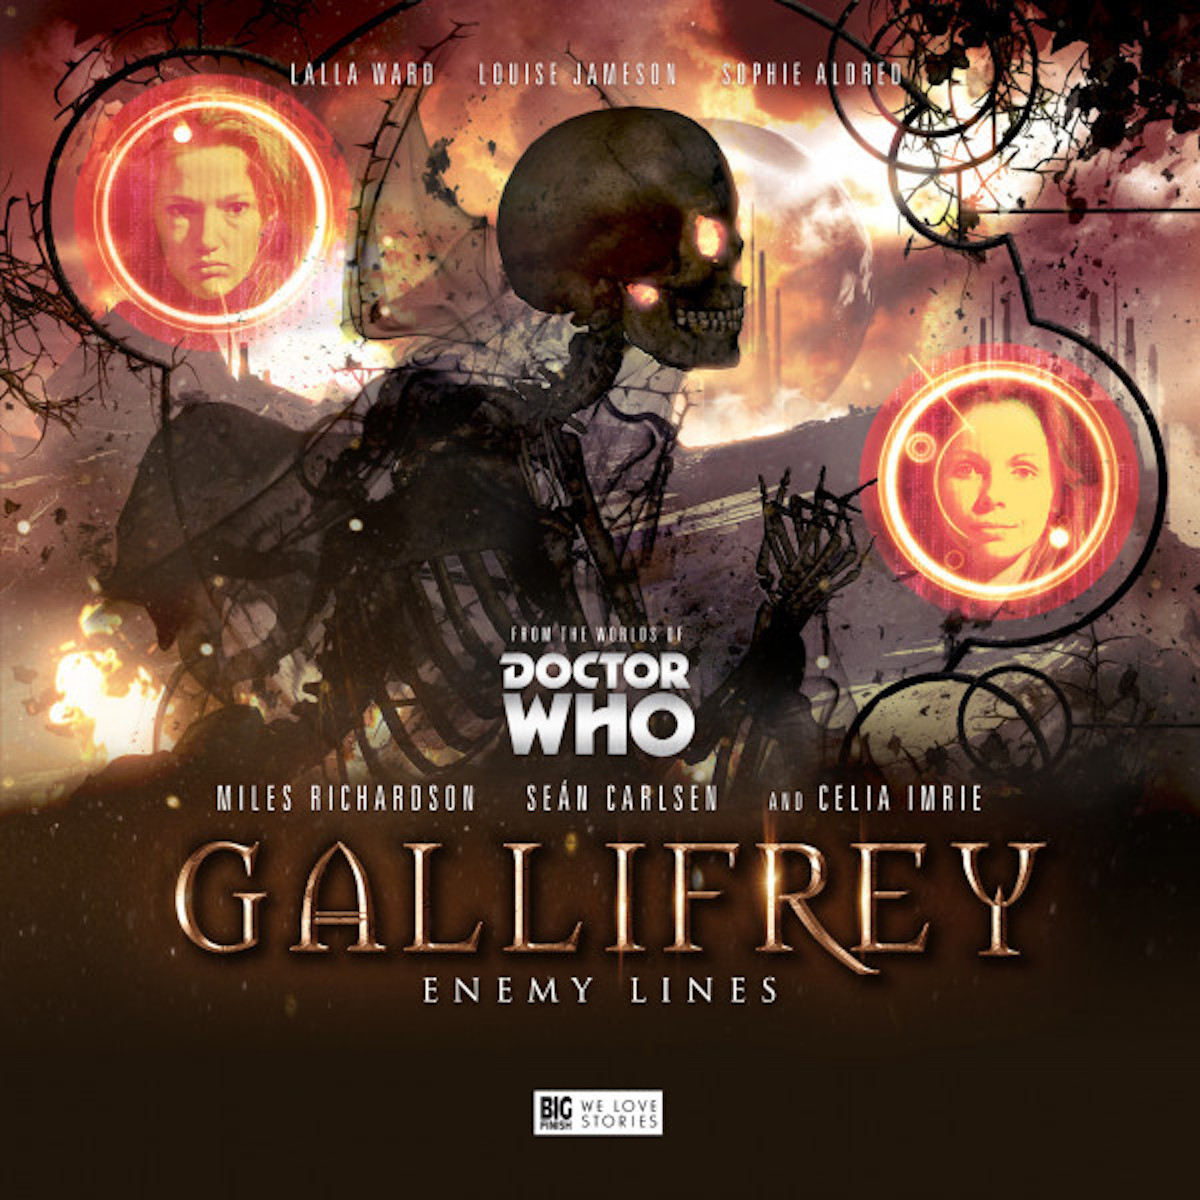 Gallifrey Enemy Lines